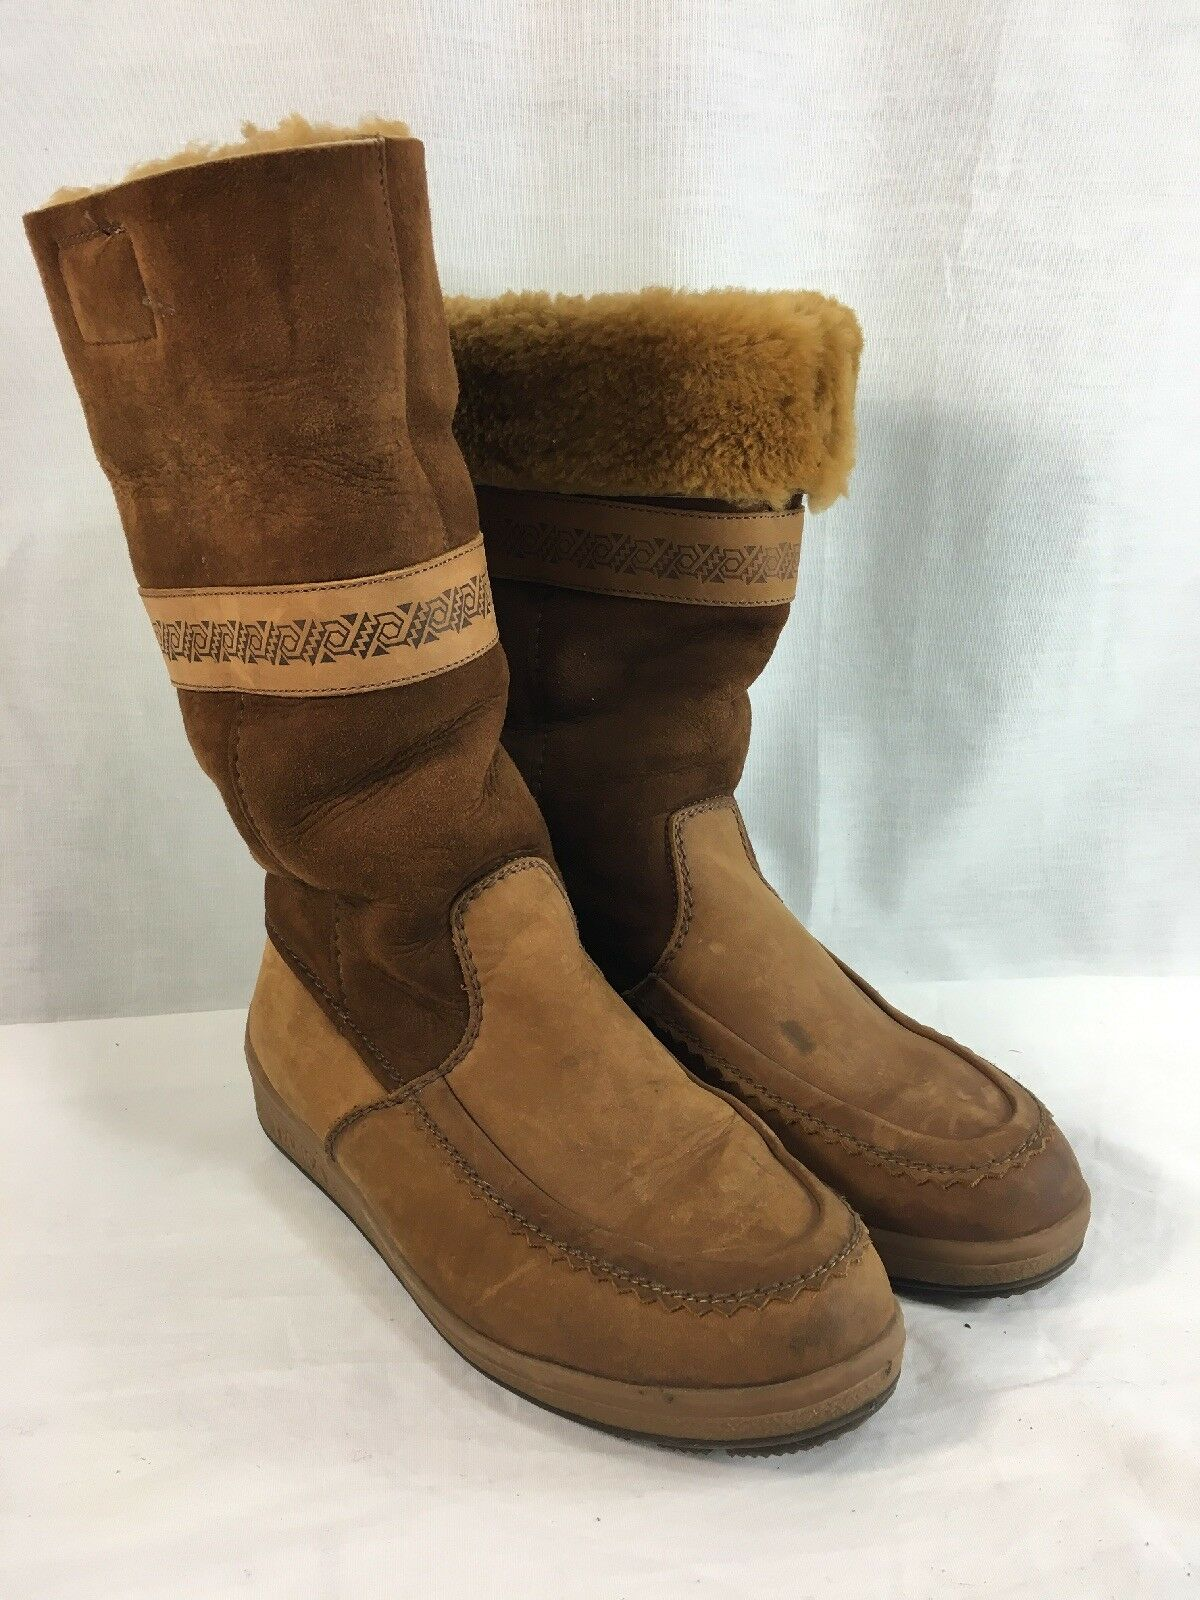 Tecnica Boots Womens 9.5 Brown Suede Leather Sherpa Lined Aztec Print